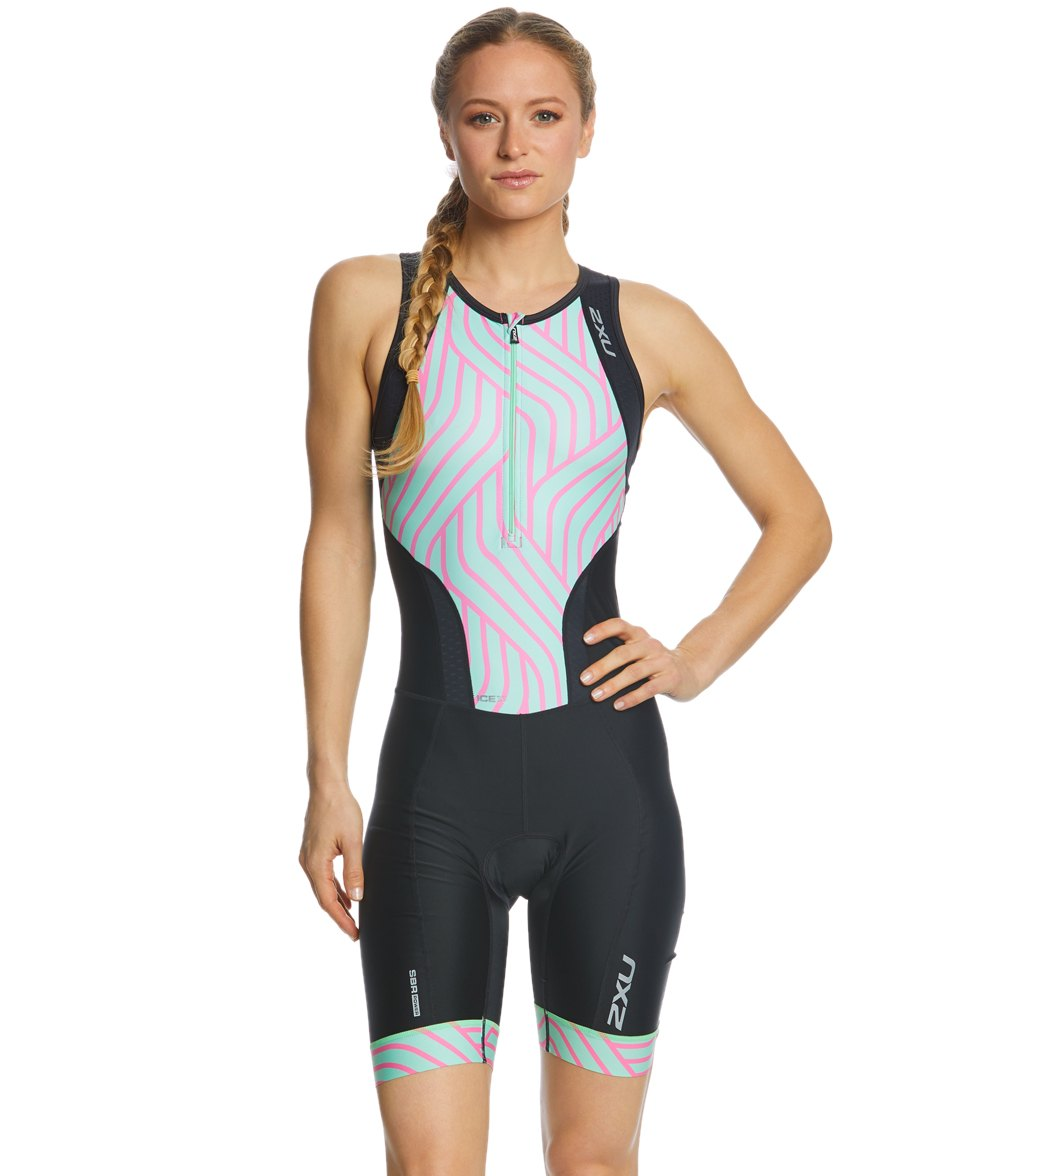 a1b977e4eaf13 2XU Women s Perform Front Zip Tri Suit at SwimOutlet.com - Free Shipping